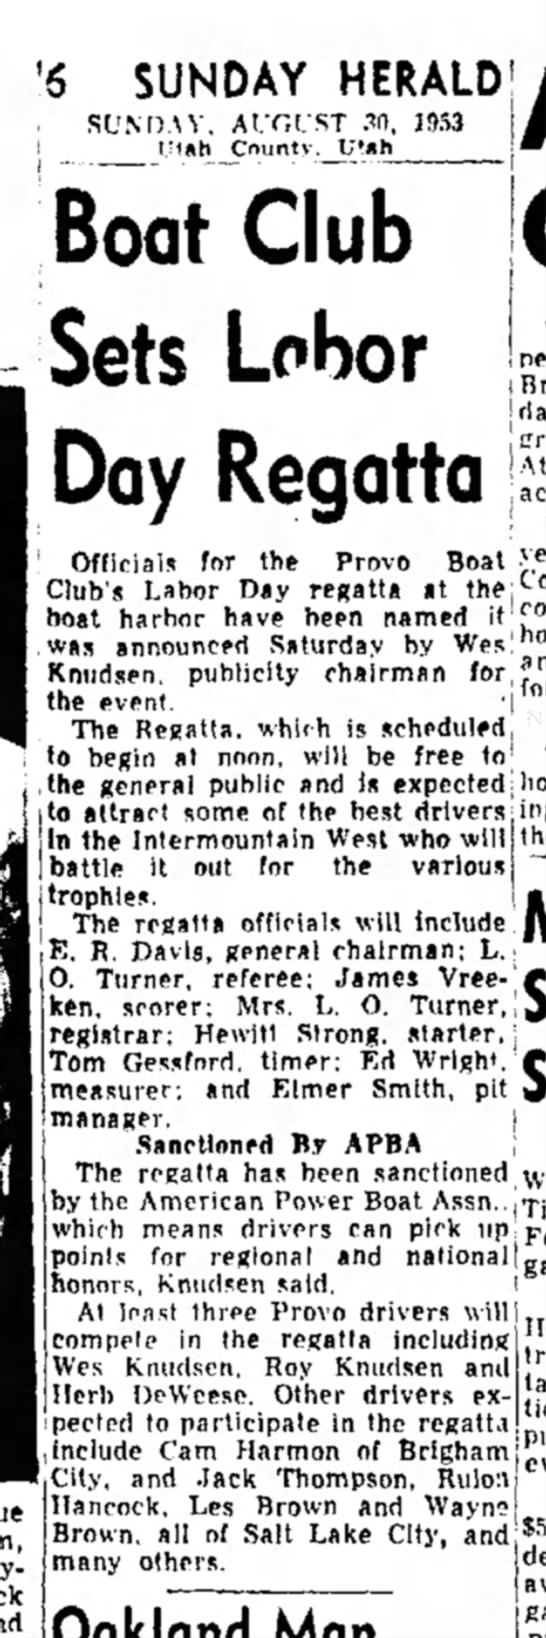 The Sunday Herald (Provo, Utah) August 30 1953 page 6